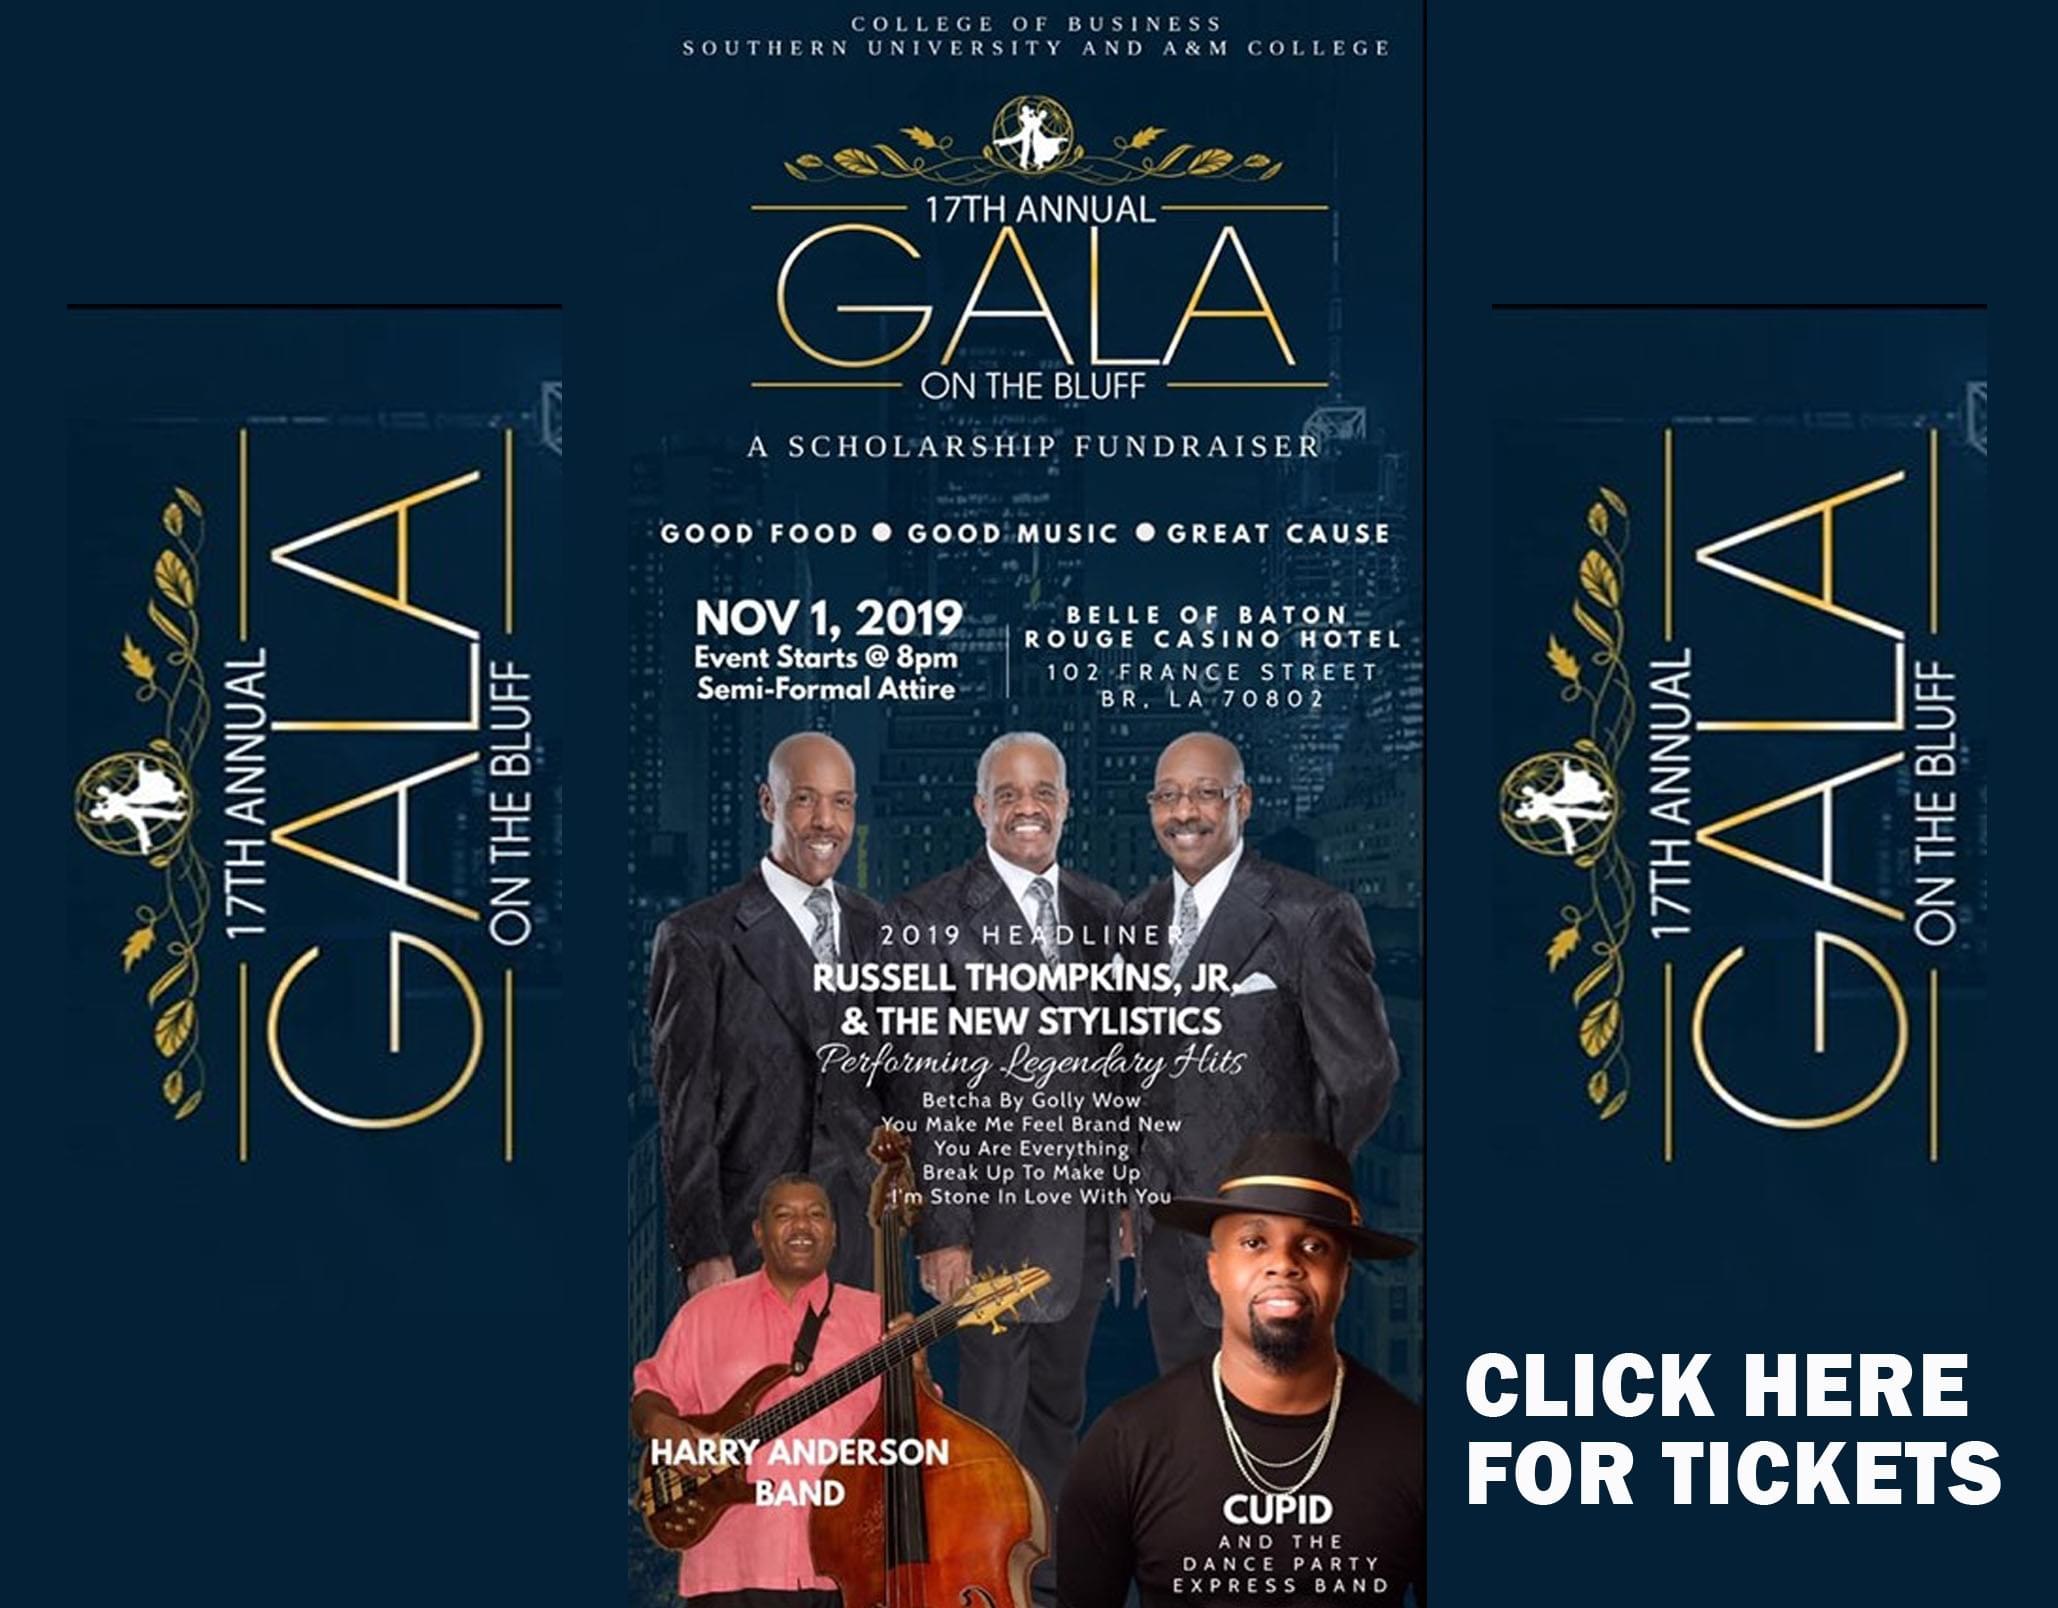 Win Tickets to Gala on the Bluff